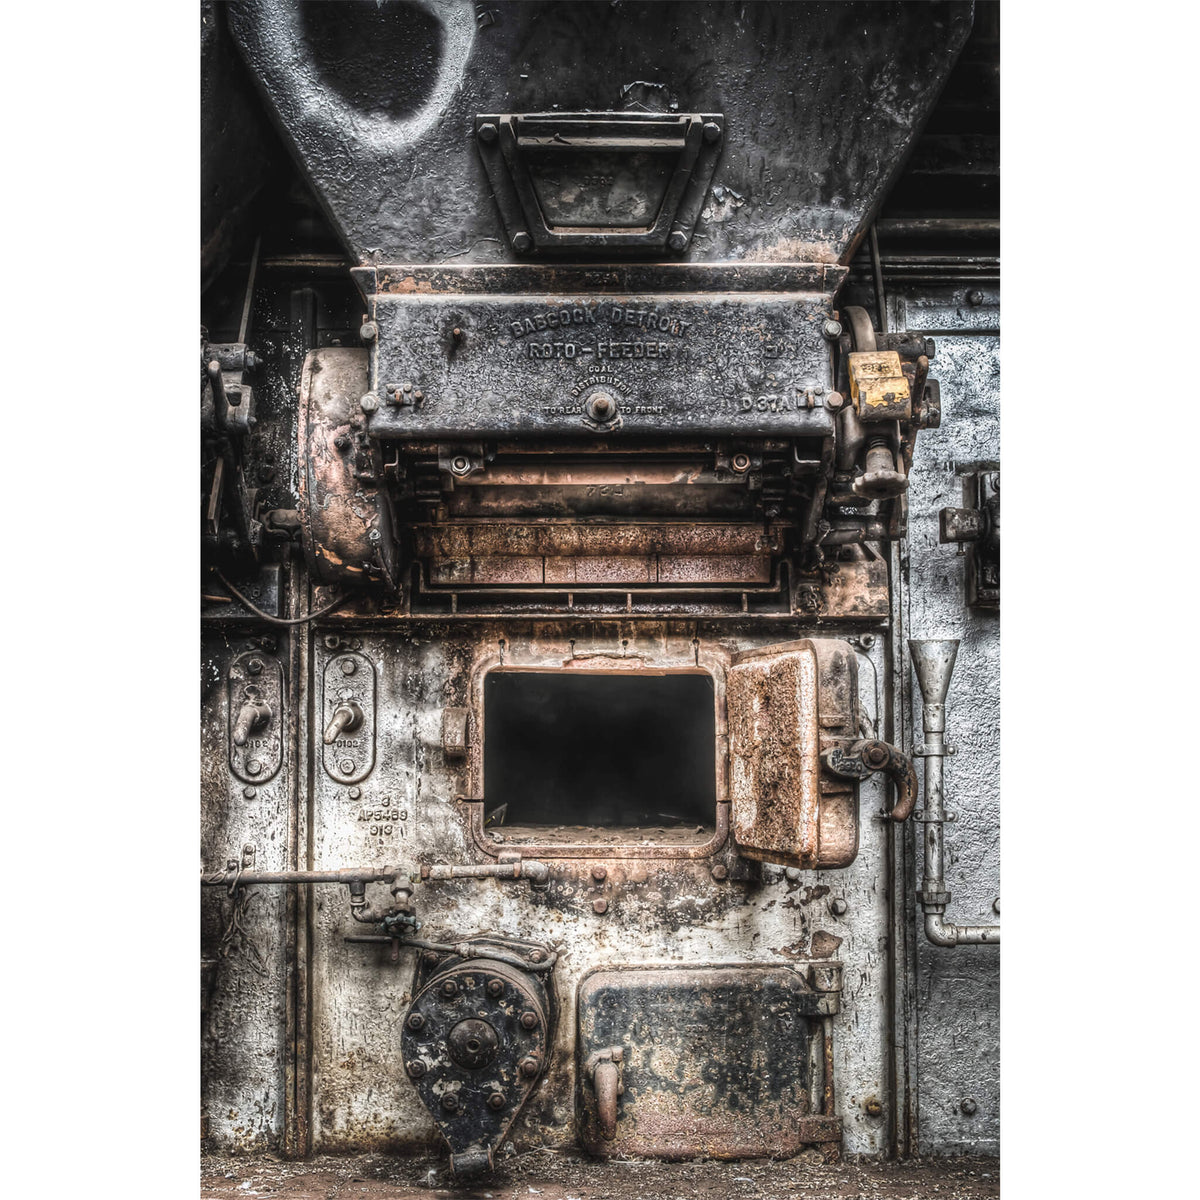 Roto Feeder | Bradmill Denim Fine Art Print - Lost Collective Shop